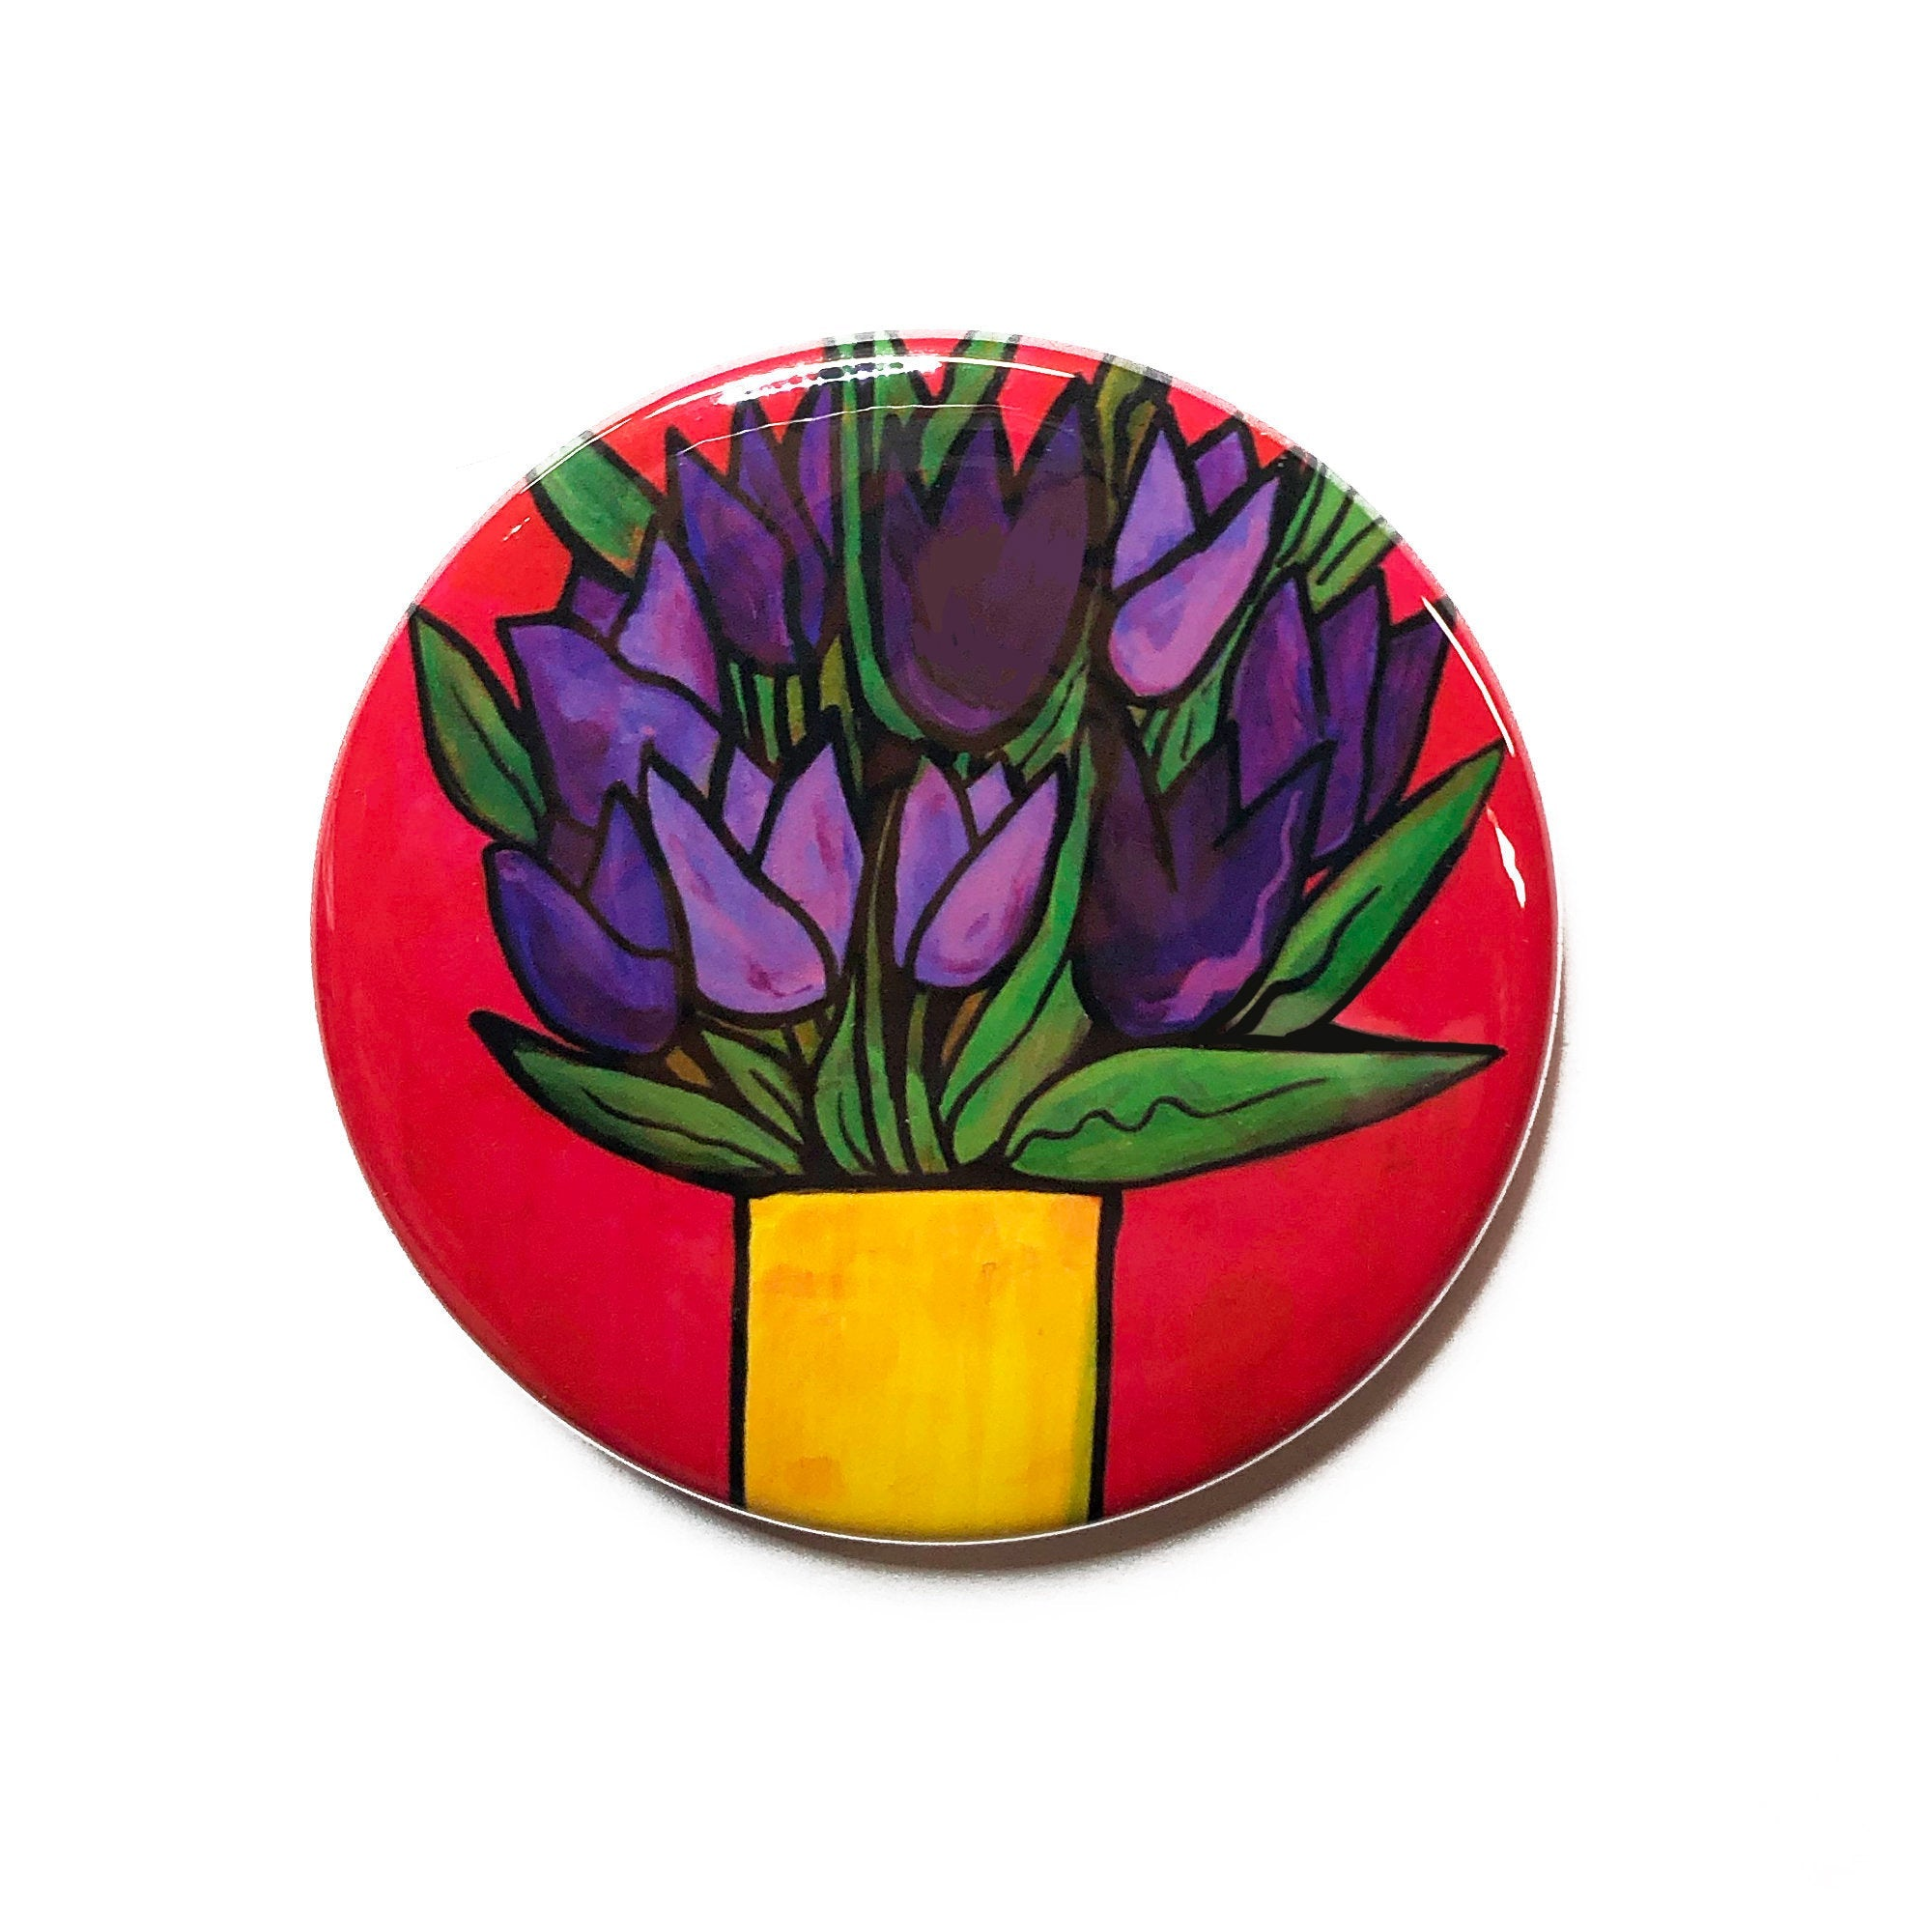 Purple Tulip Magnet, Pin Back Button, or Pocket Mirror - Purple Flowers in Vase - 1 inch, 1.25 inch, 2.25 inch